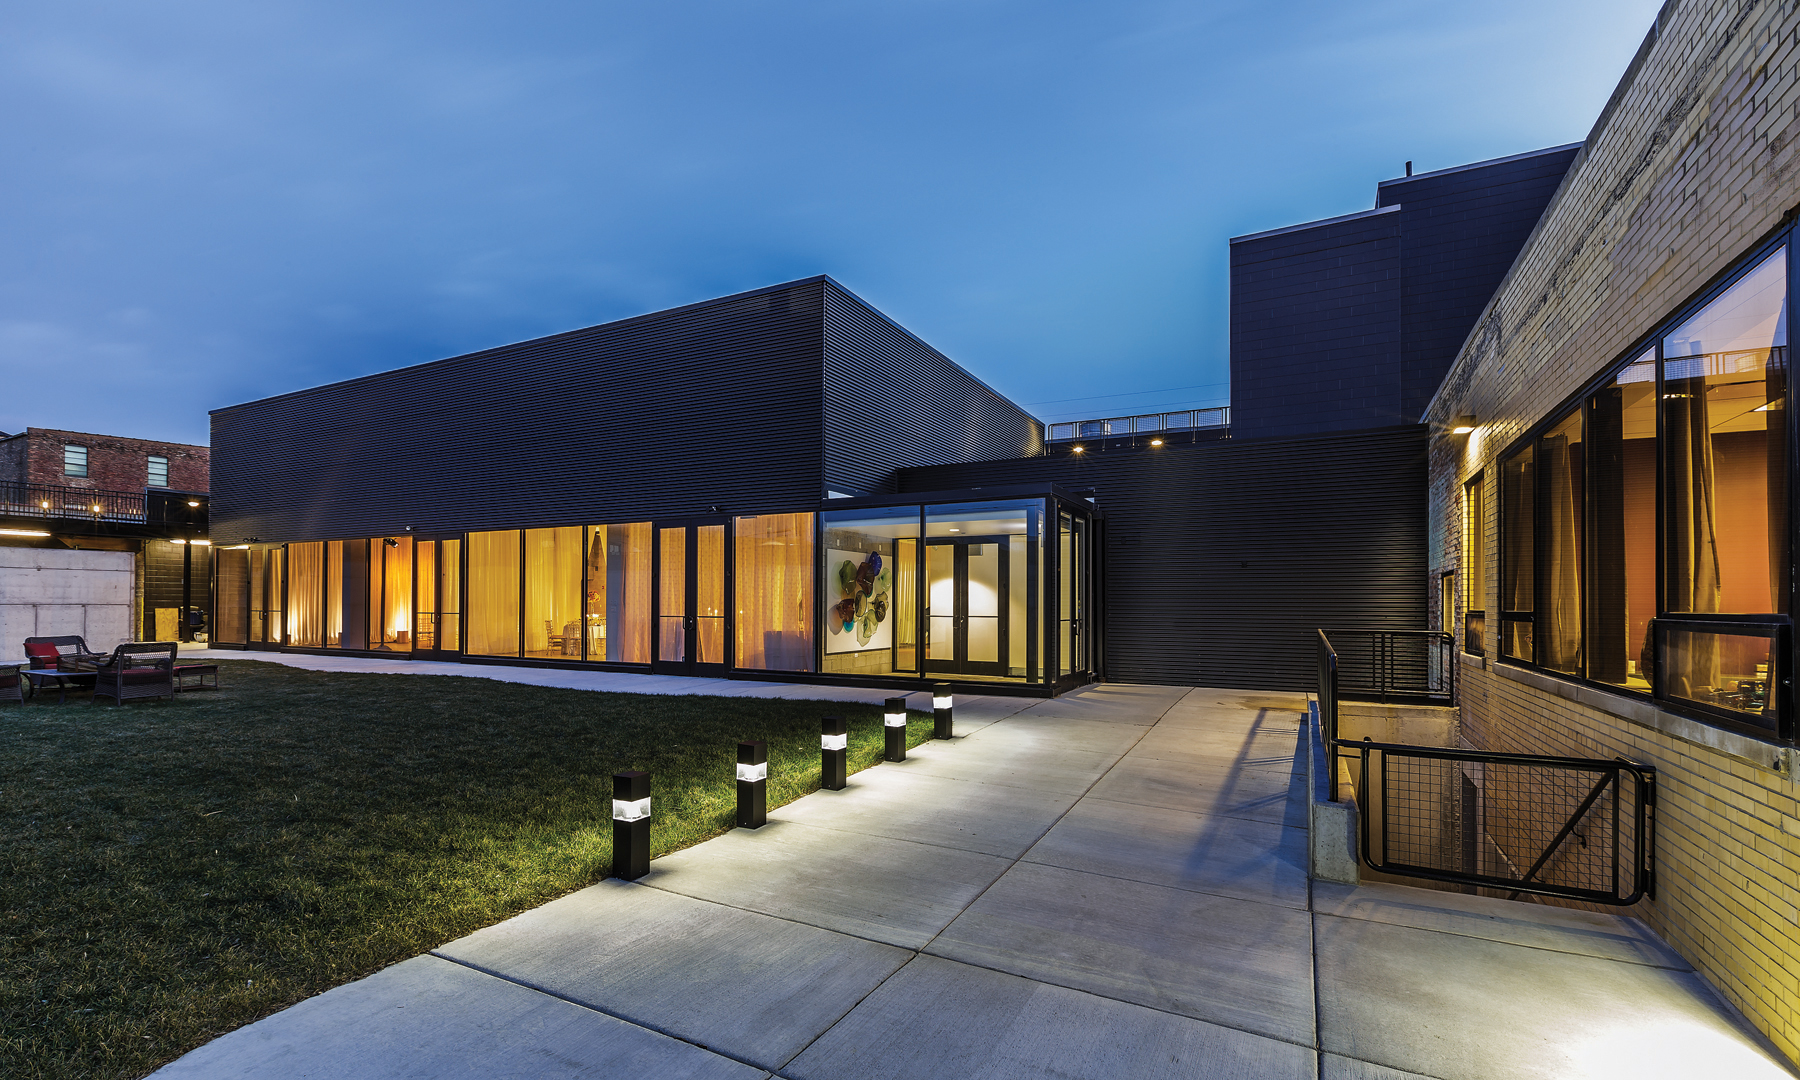 Our Design Of Chicagos Ignite Glass Studios Won Two Awards An Architectural Distinguished Building As Well A Divine Detail